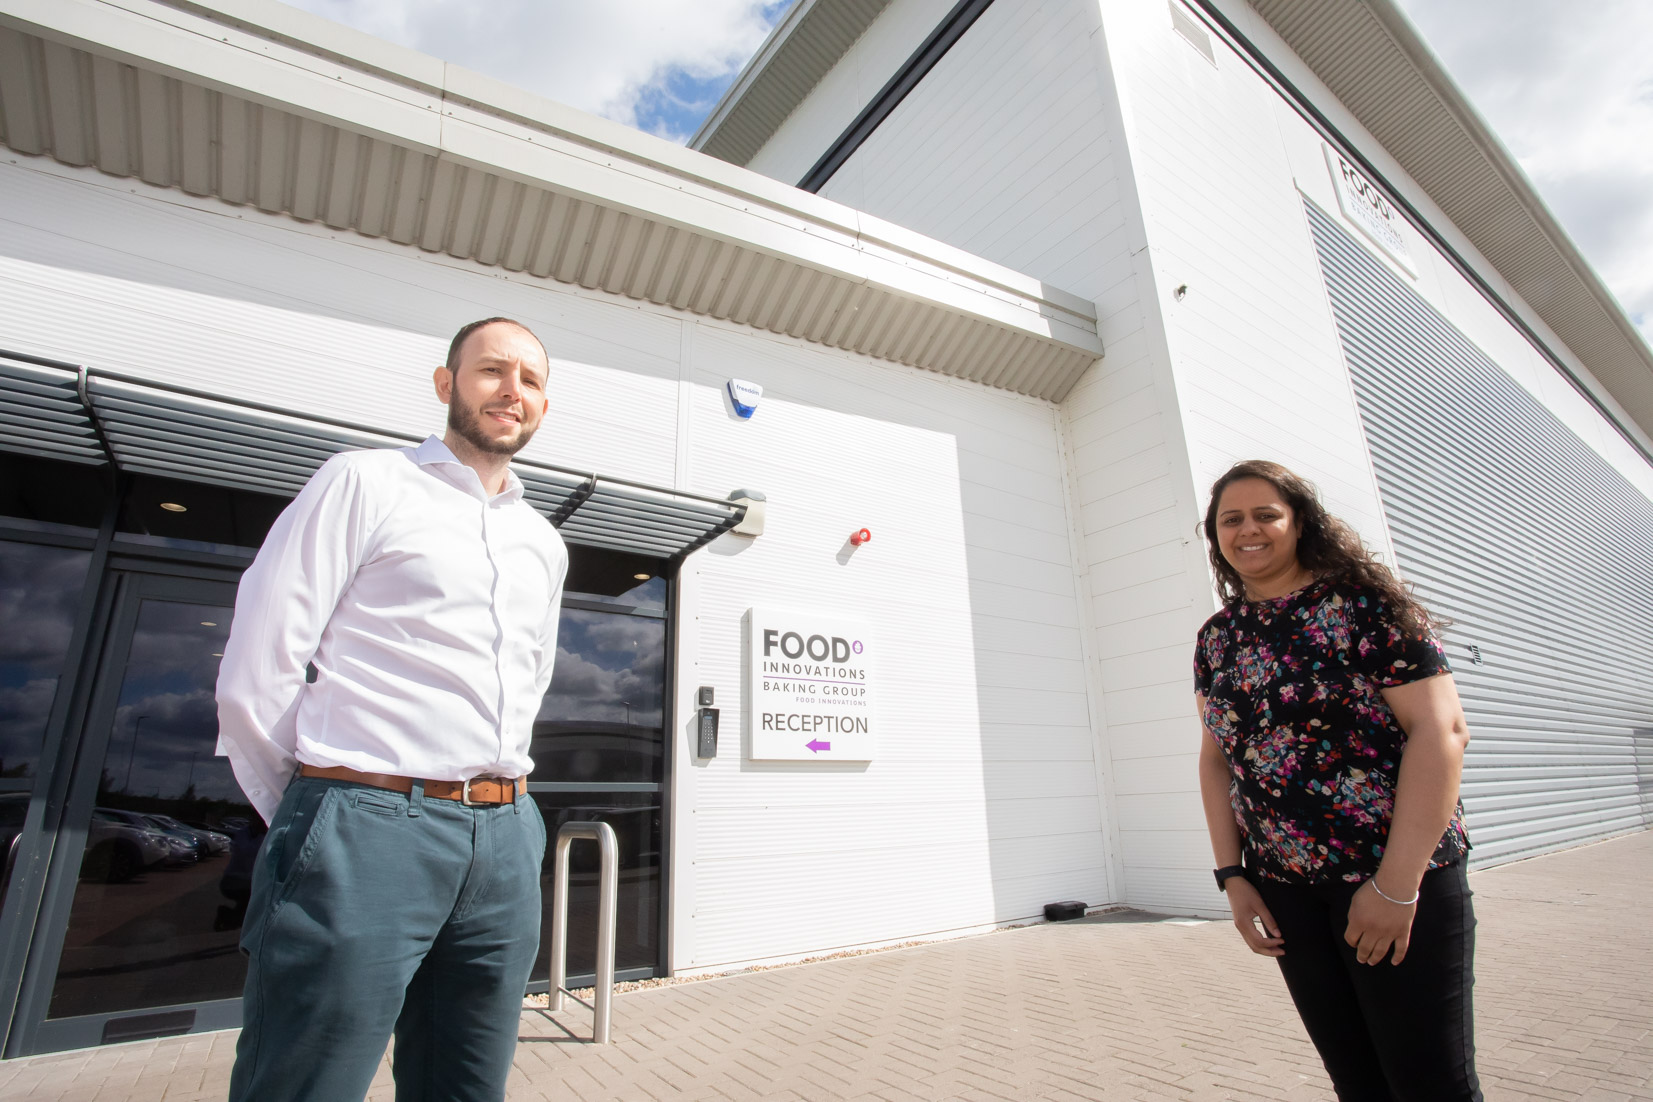 £3m investment paves the way for 35 new jobs at Food Innovations Baking Group